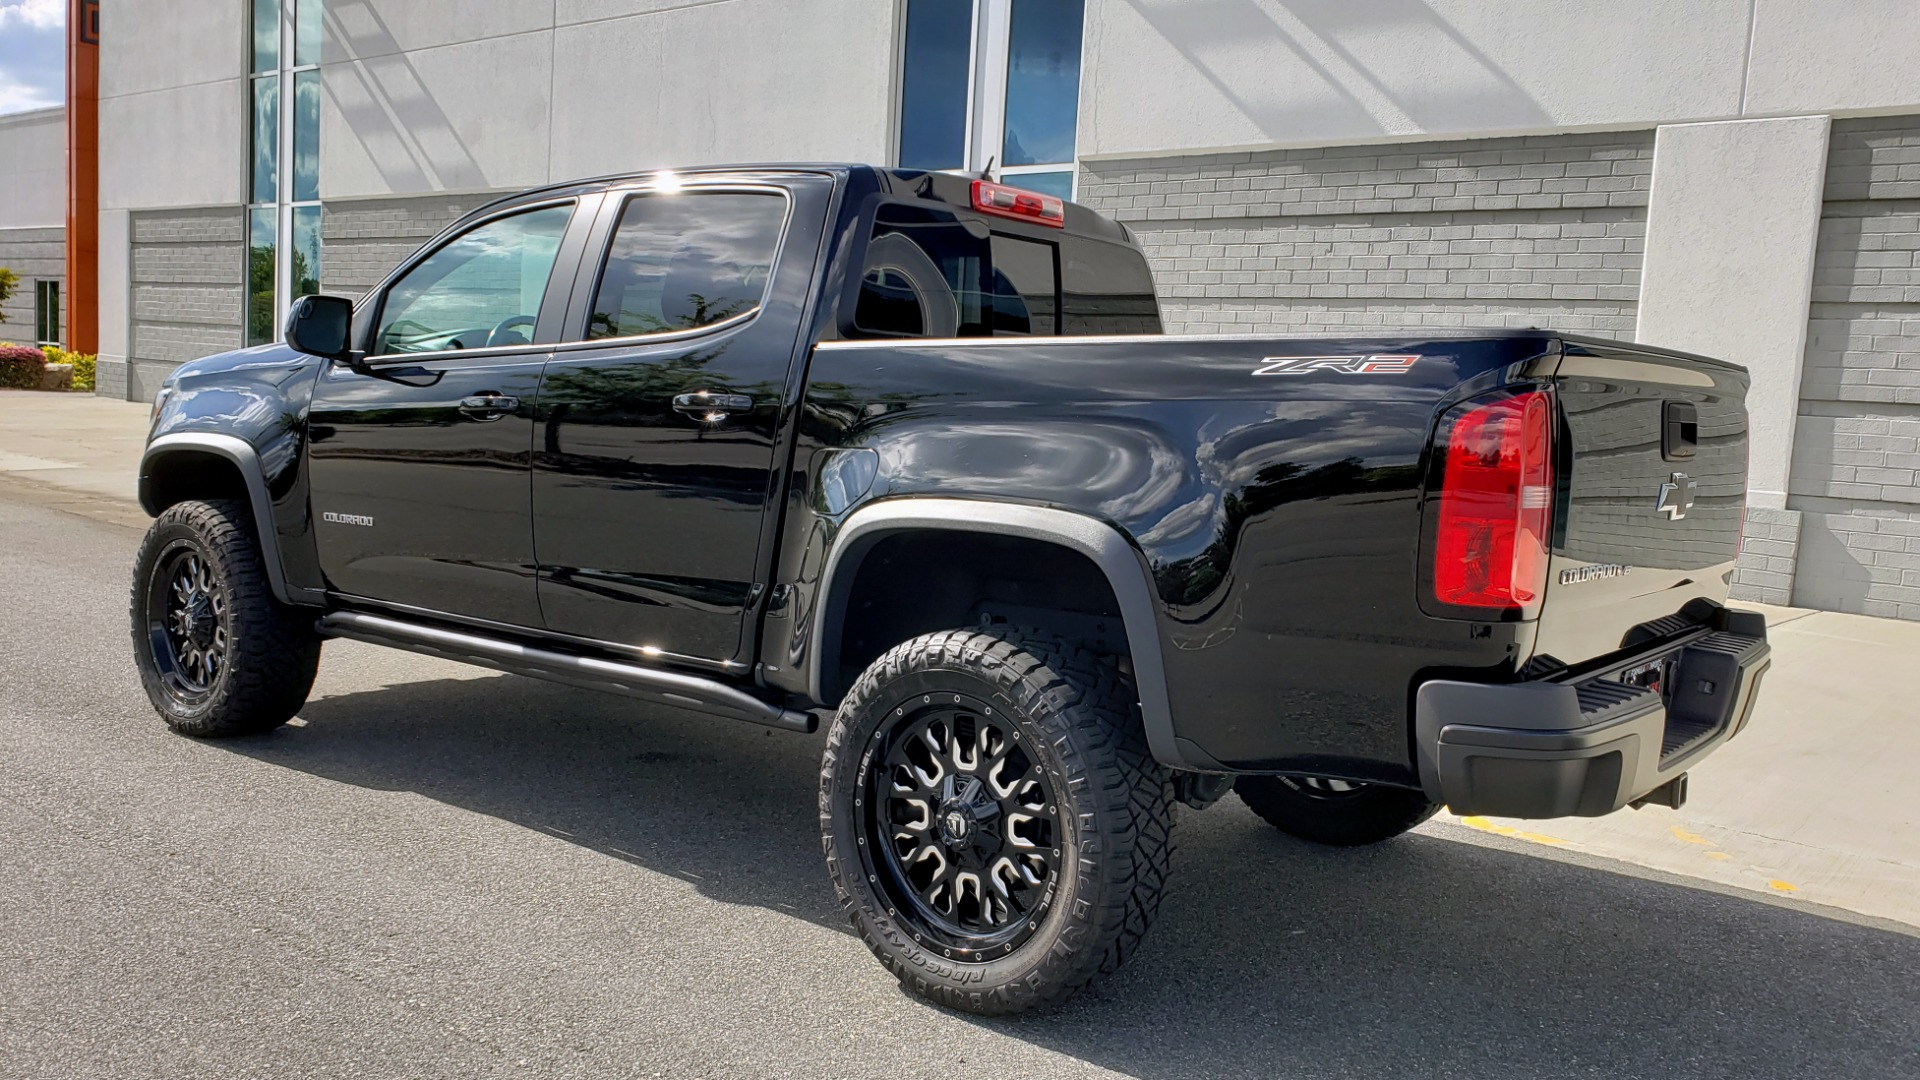 Used 2019 Chevrolet COLORADO 4WD ZR2 / 3.6L V6 / 8-SPD AUTO / CREWCAB / LEATHER / BOSE / REARVIEW for sale $41,995 at Formula Imports in Charlotte NC 28227 5